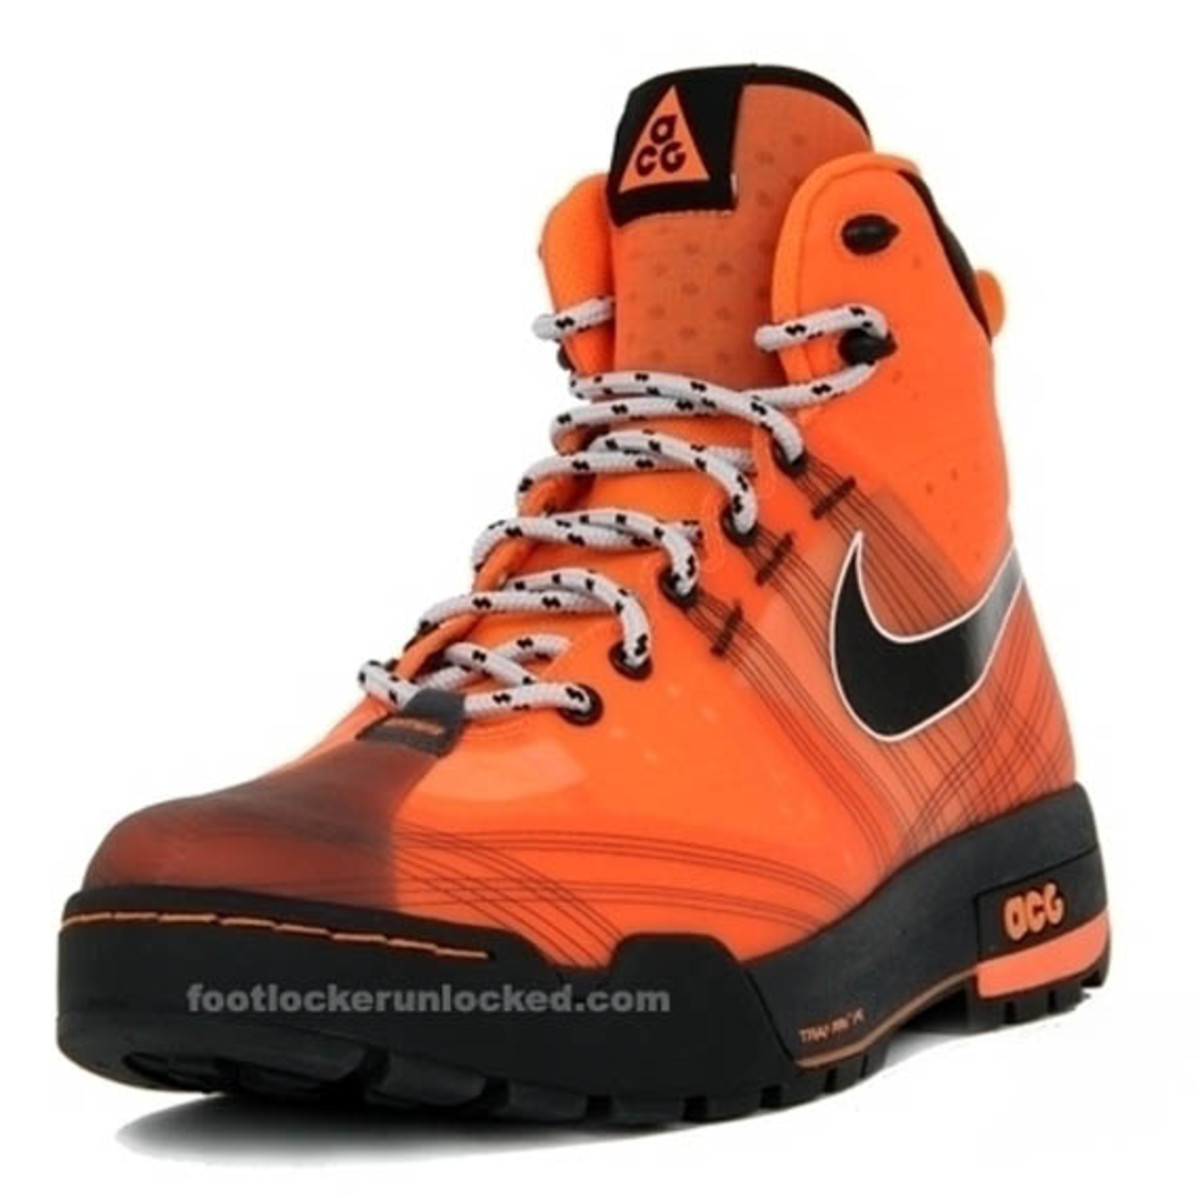 nike_acg_ashiko_boot_total_orange_1